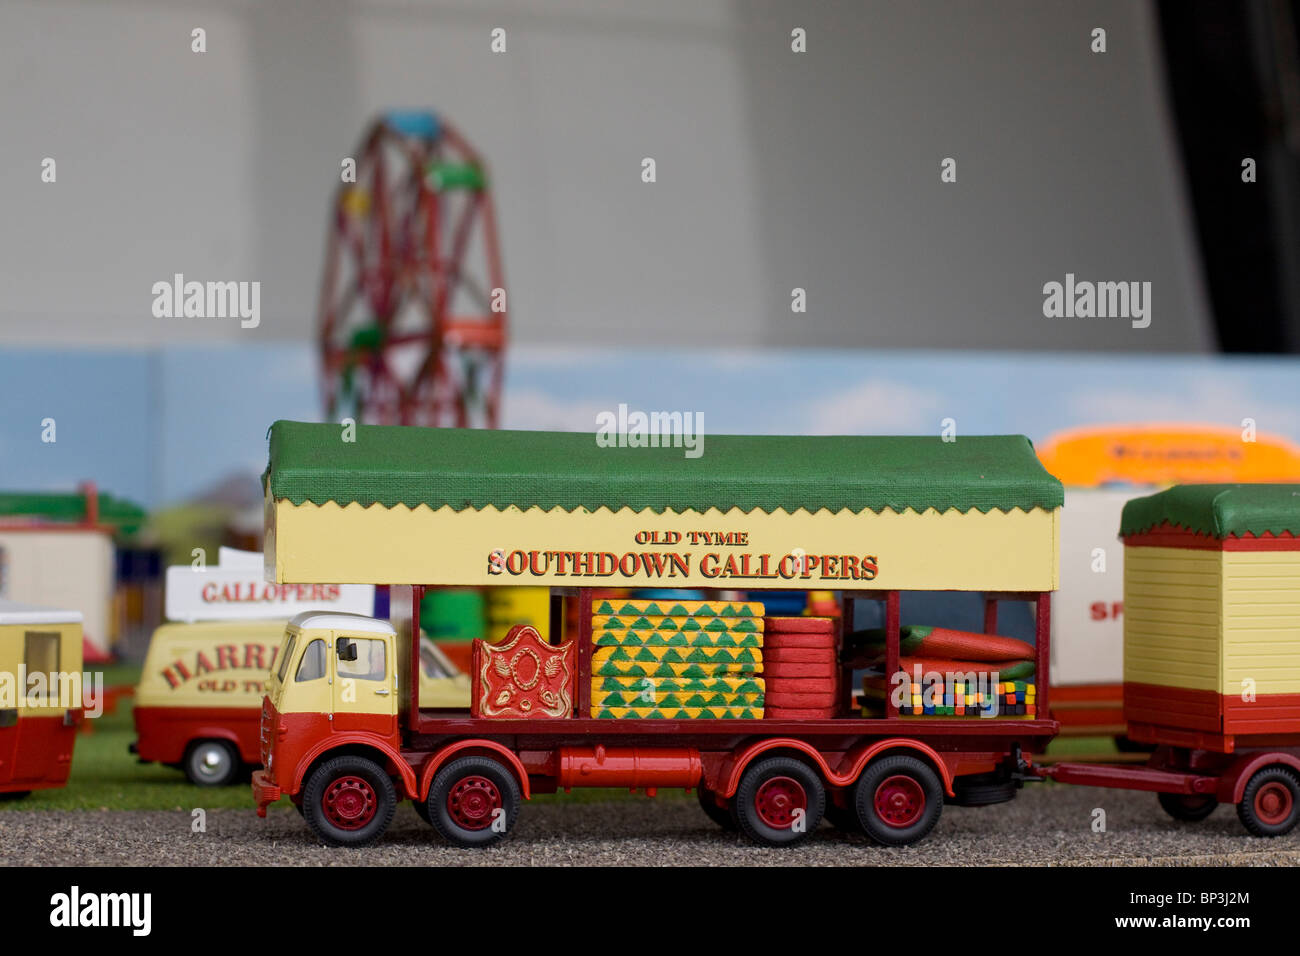 Model of a Fairground Ride at the Fun Fair show Stock Photo ...